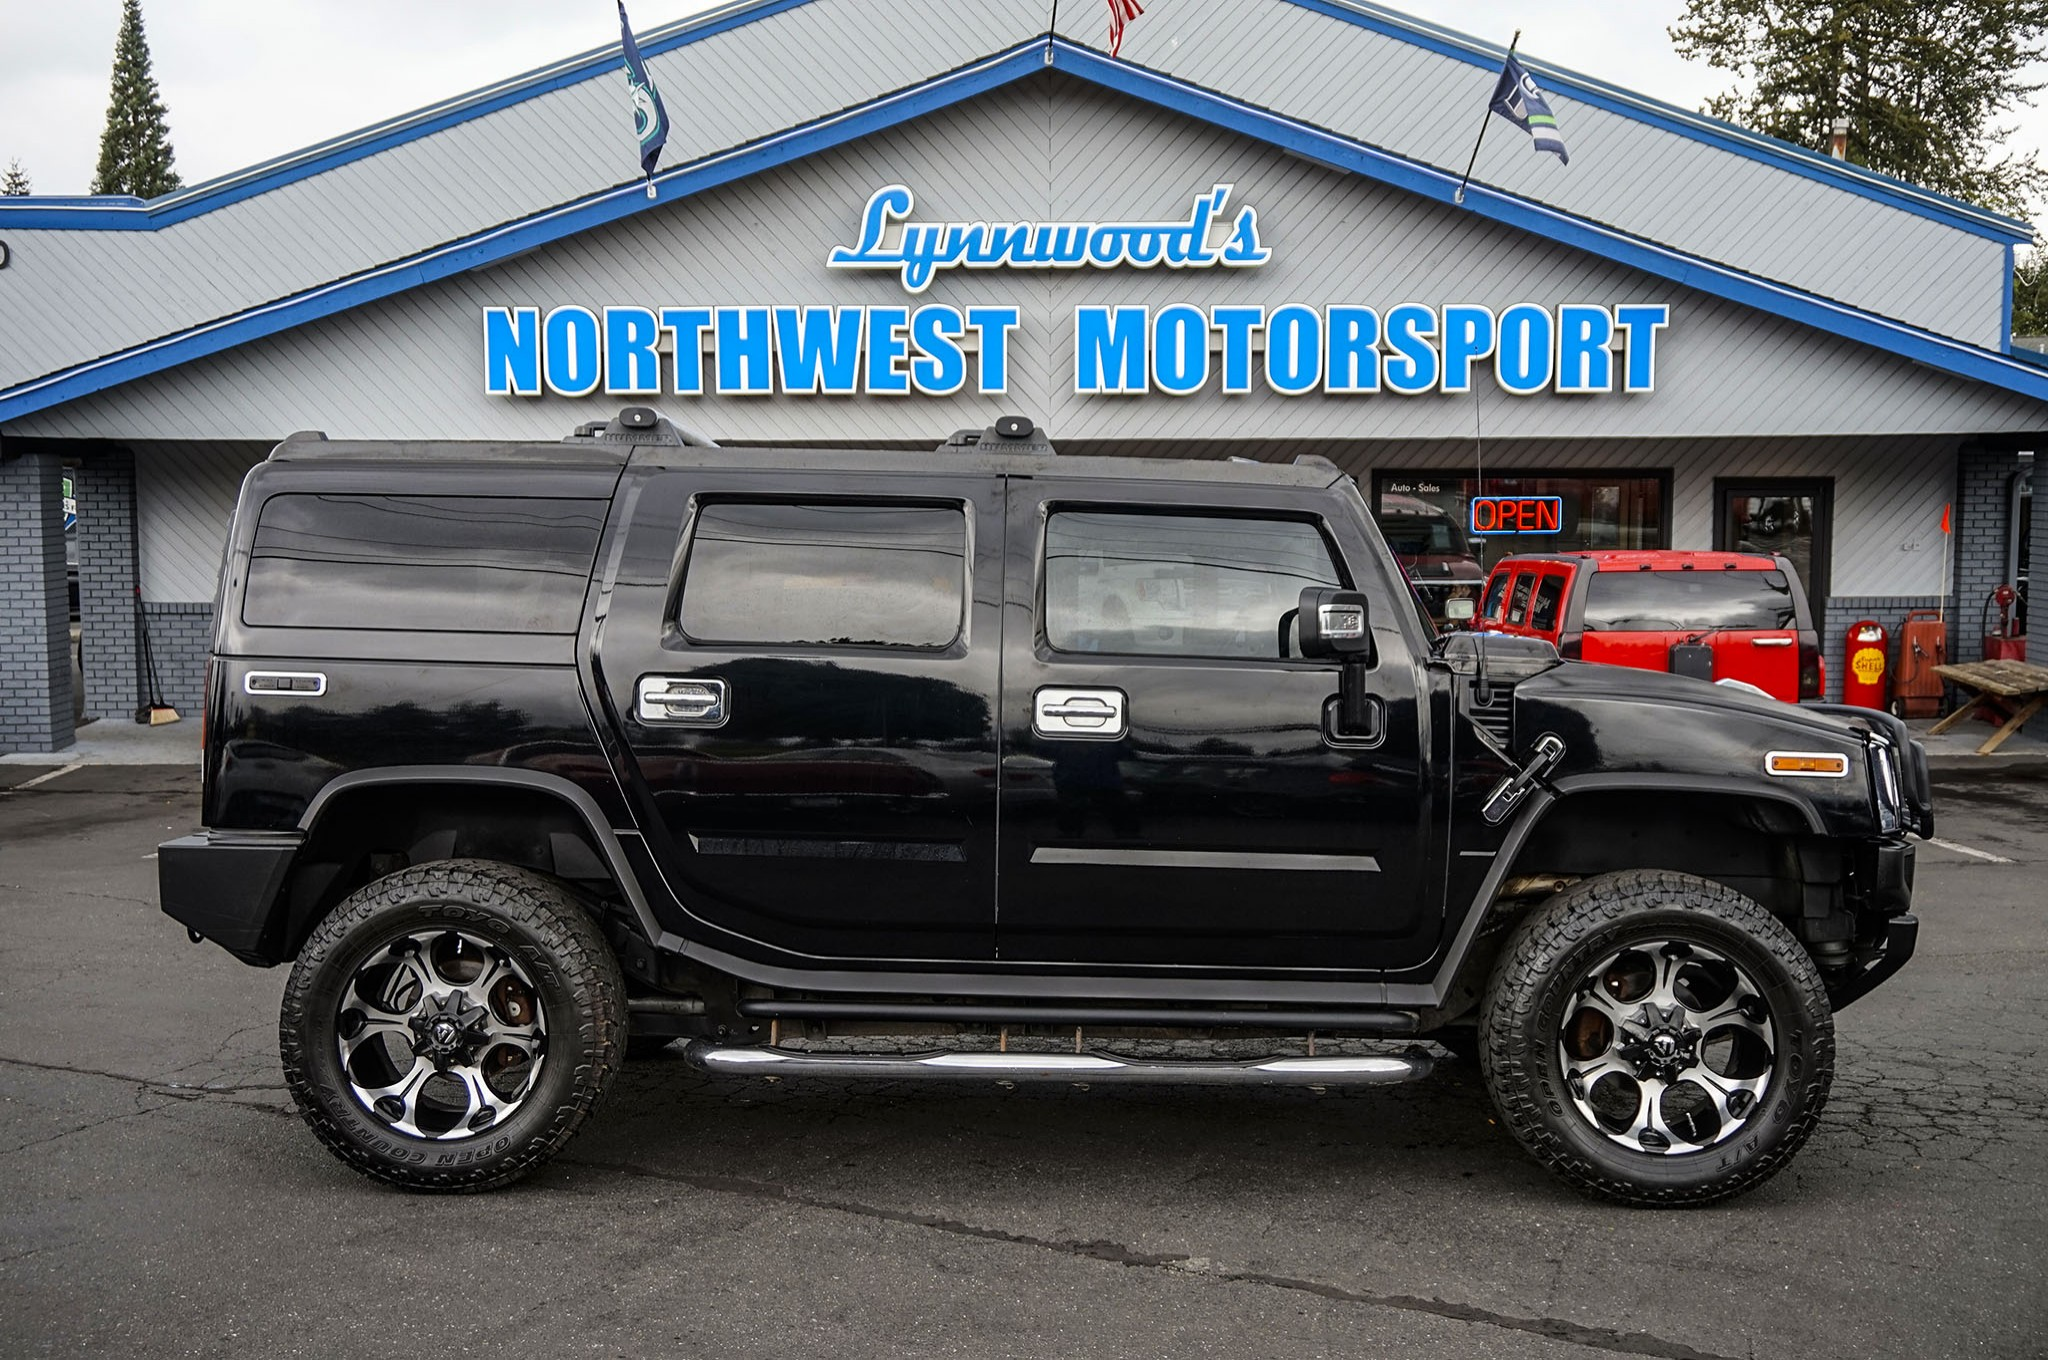 2004 hummer h2 4x4 northwest motorsport 2004 hummer h2 4x4 vanachro Image collections